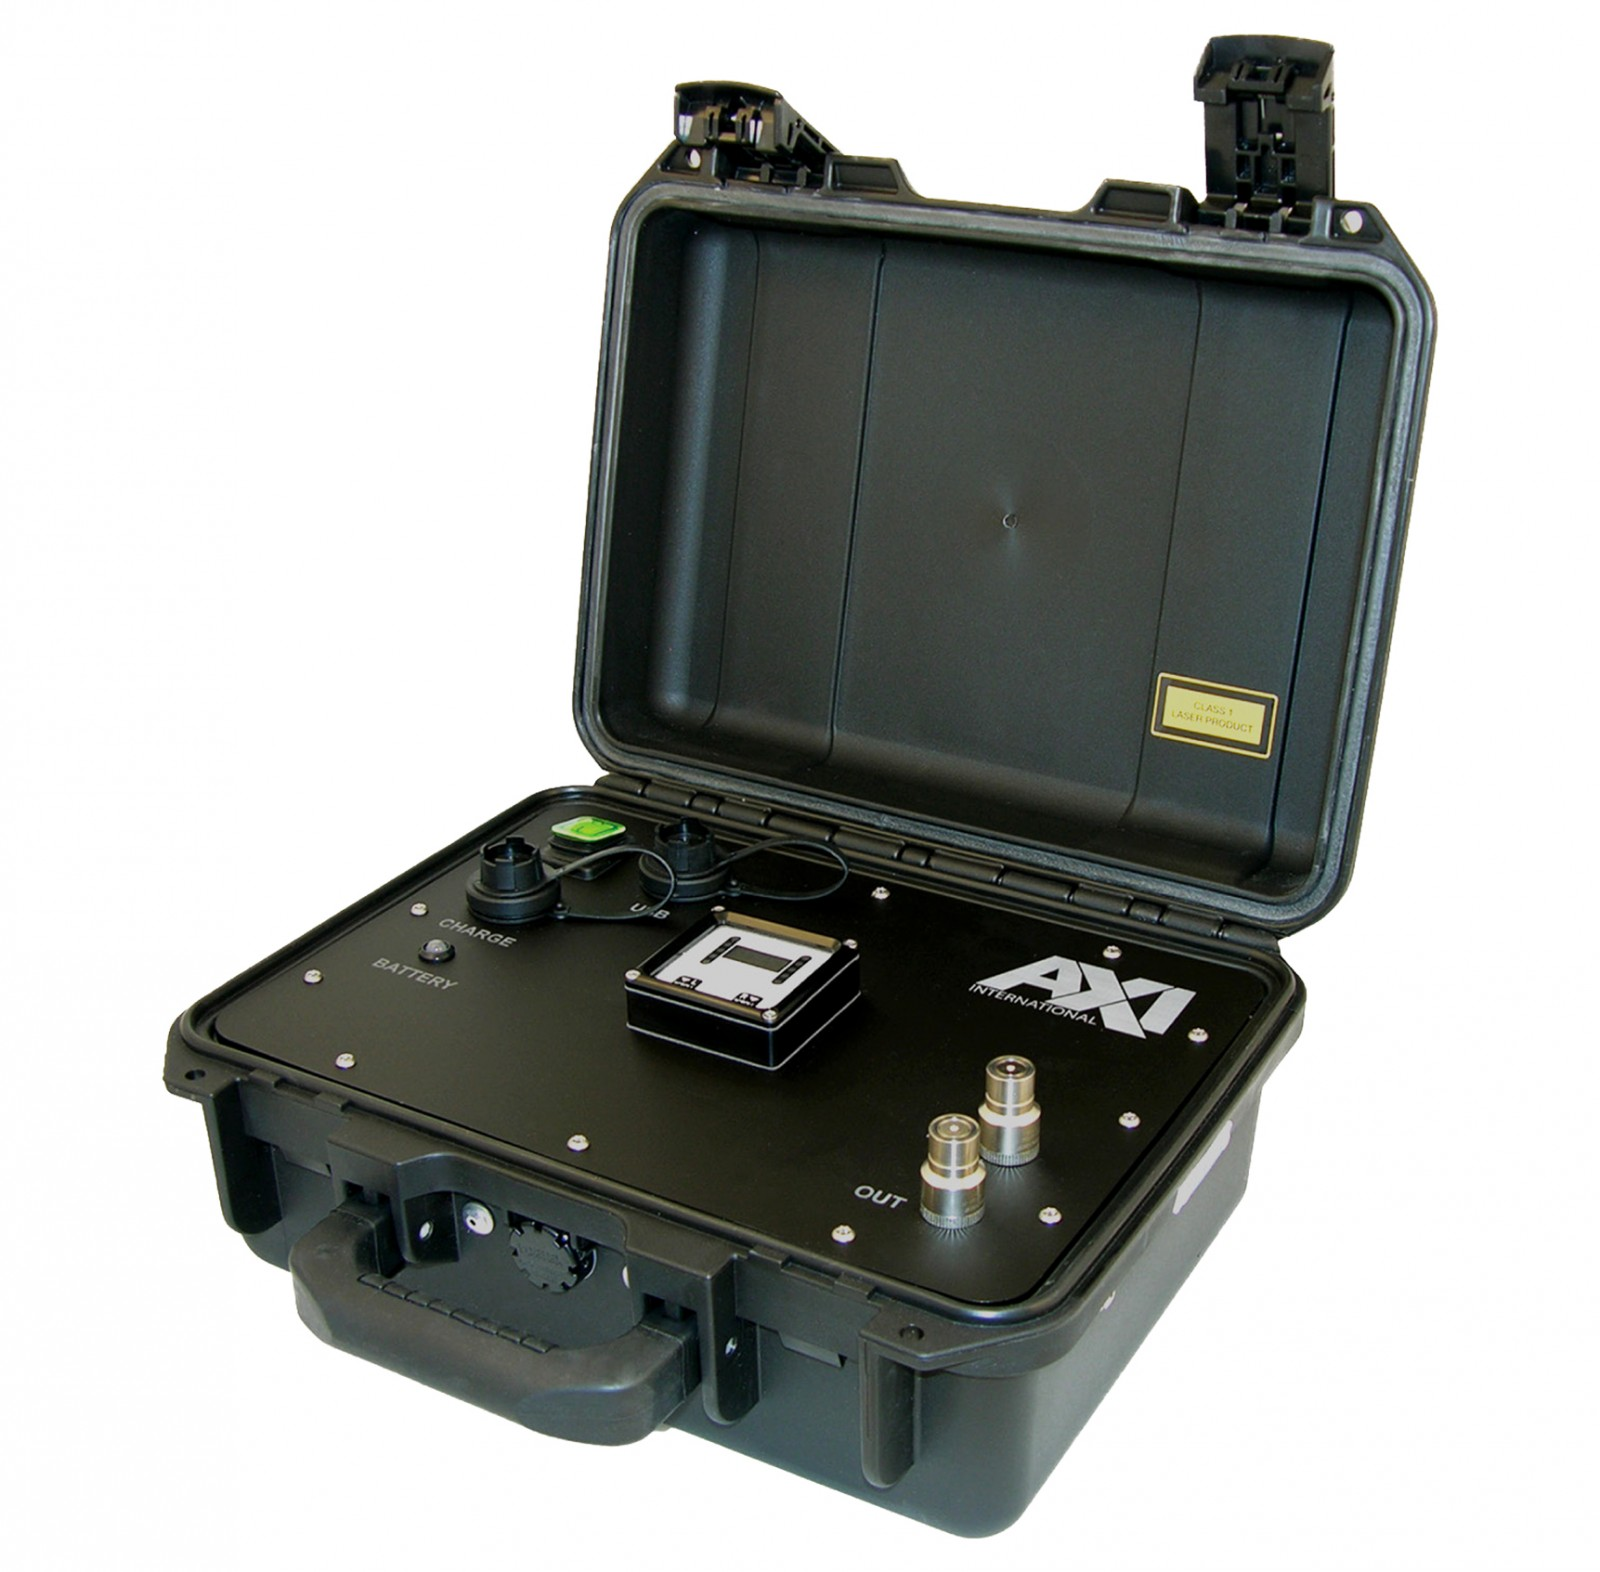 Fuel sampling can be done with a portable particle counter. PHOTO FROM AXI INTERNATIONAL